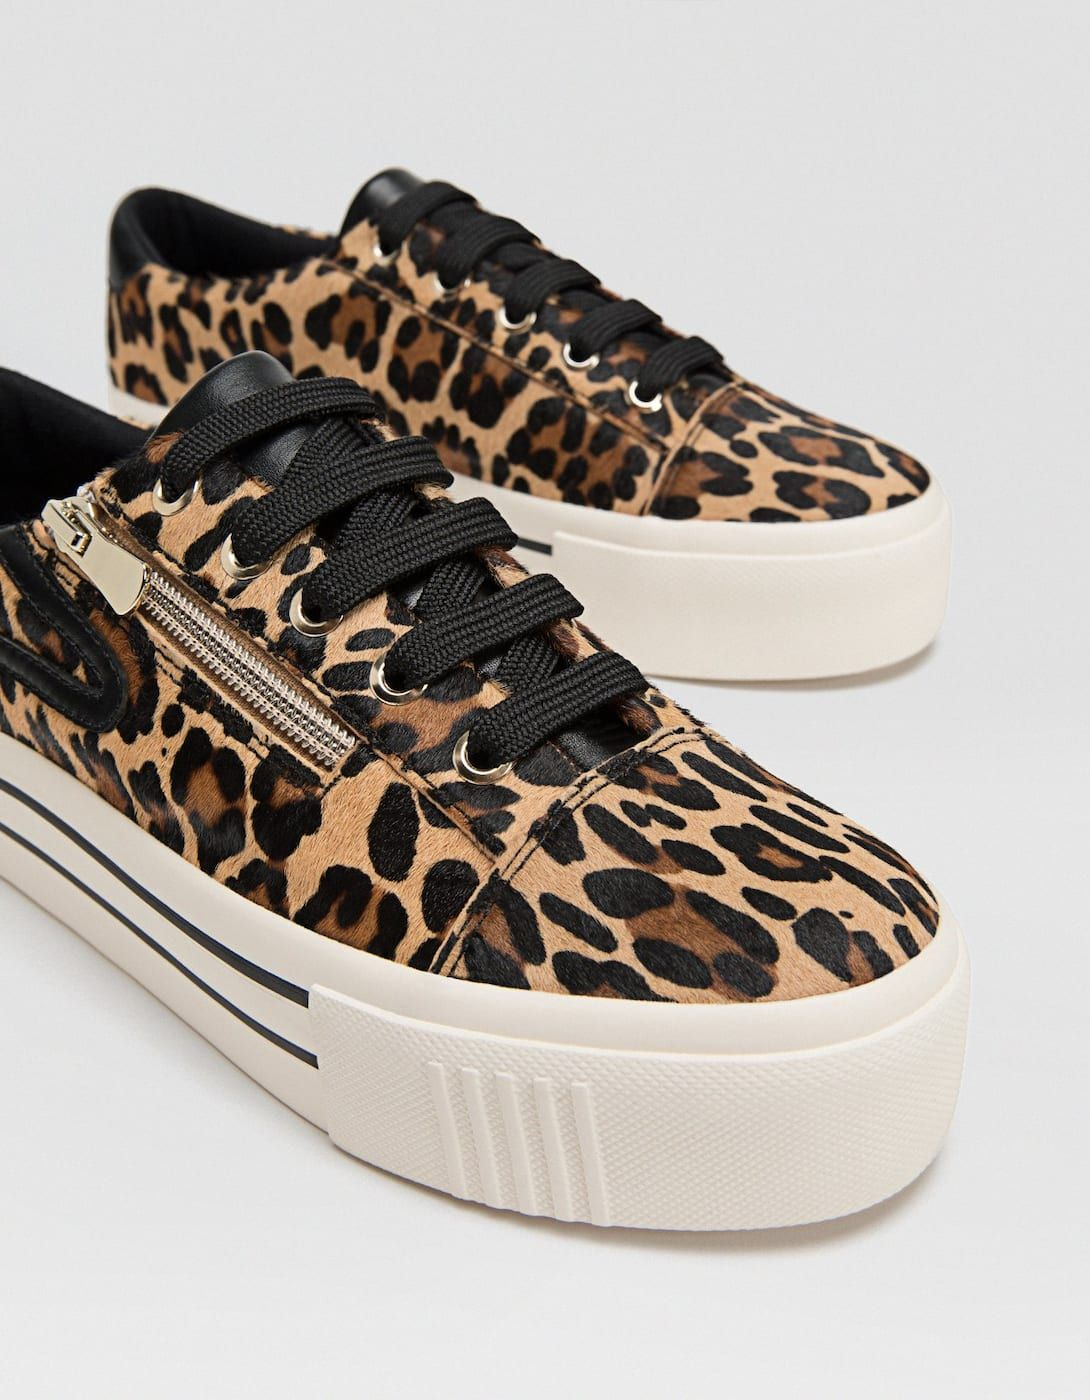 huge selection of 61f8c 0f912 Leopard print LEATHER trainers - Trainers   Stradivarius Spain - Islas  Canarias